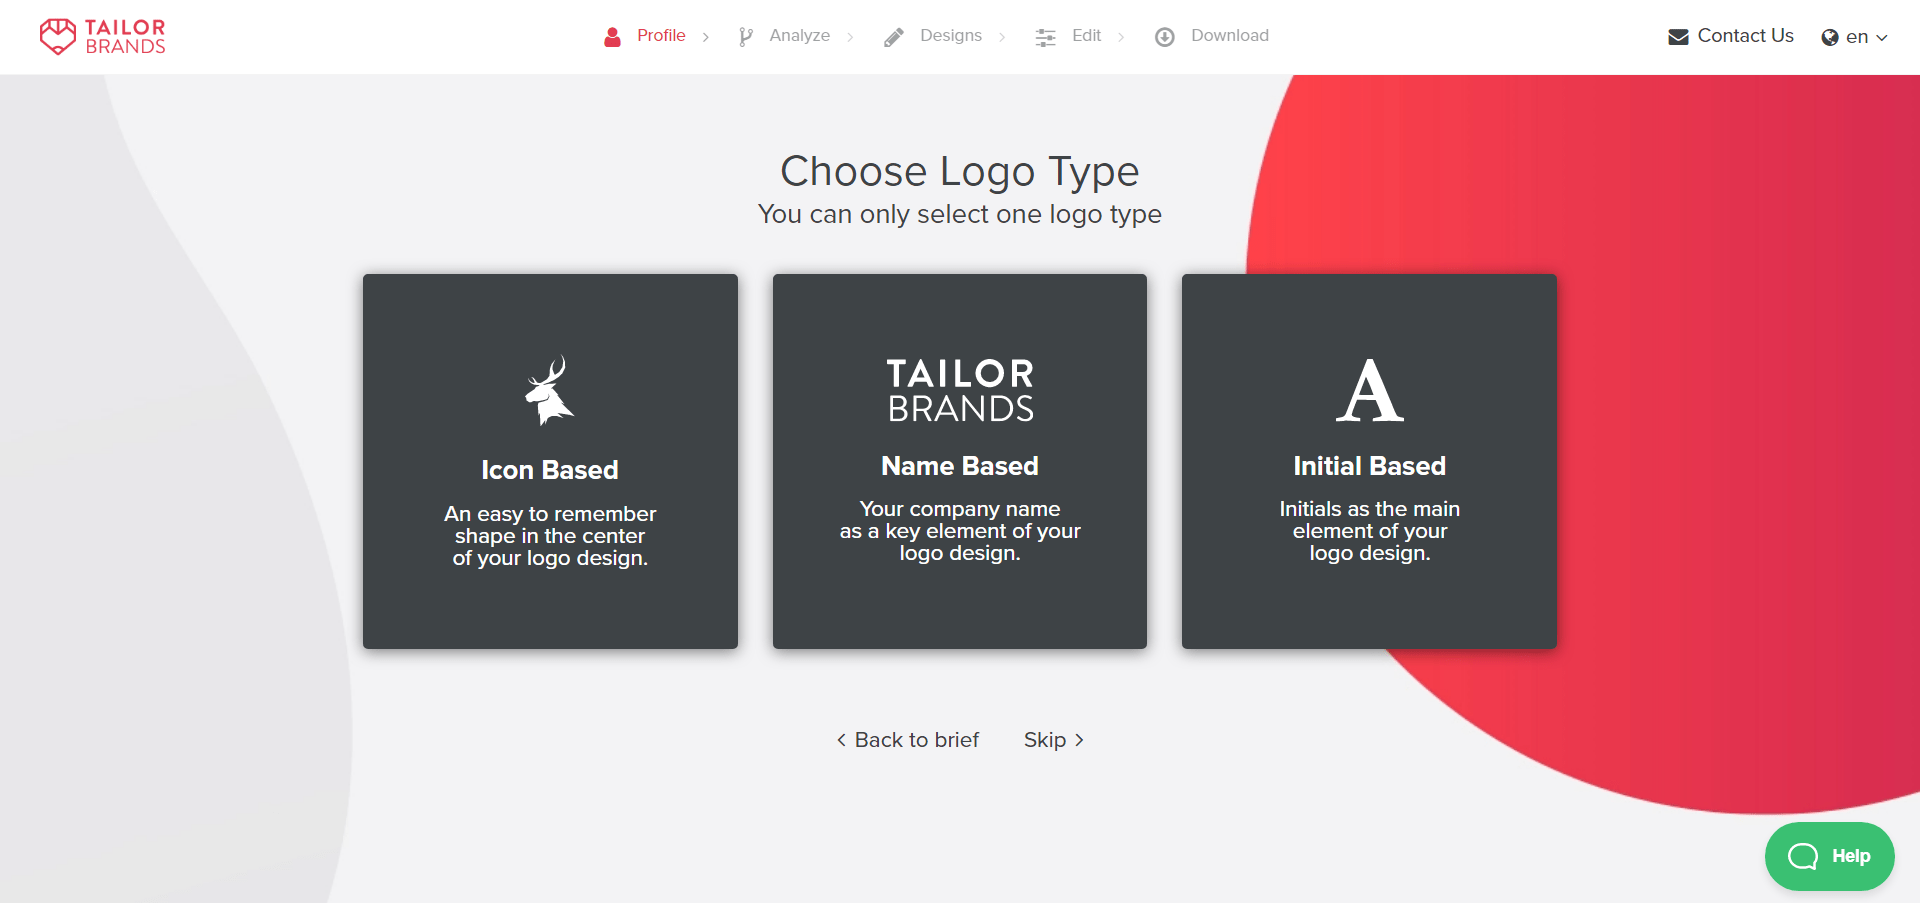 Tailor brands Logo types